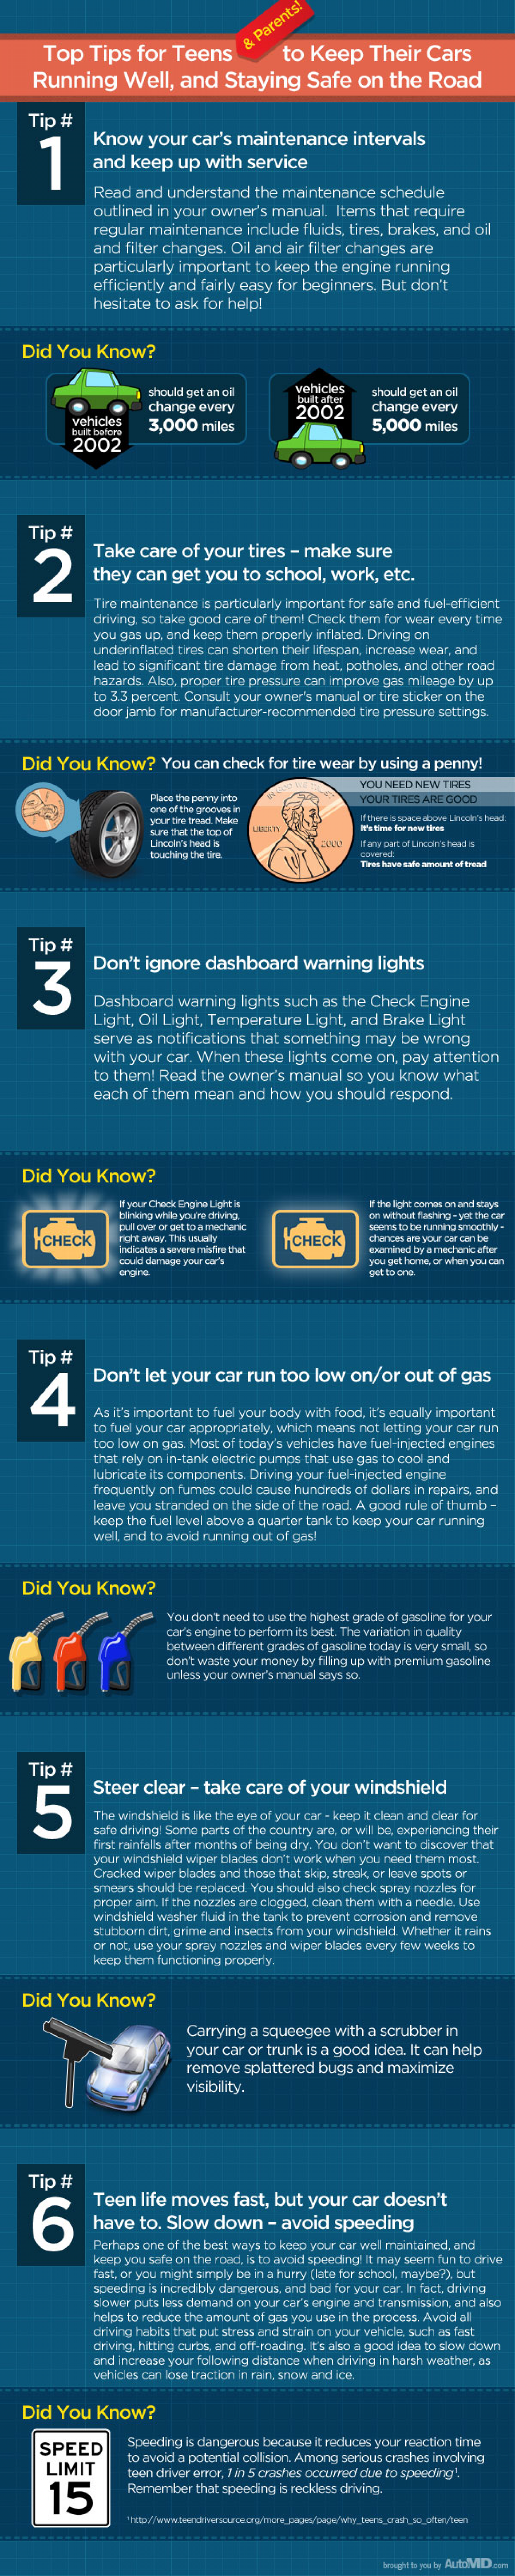 Top Tips for Teens (and Parents!) to Keep Their Cars Running Well Infographic